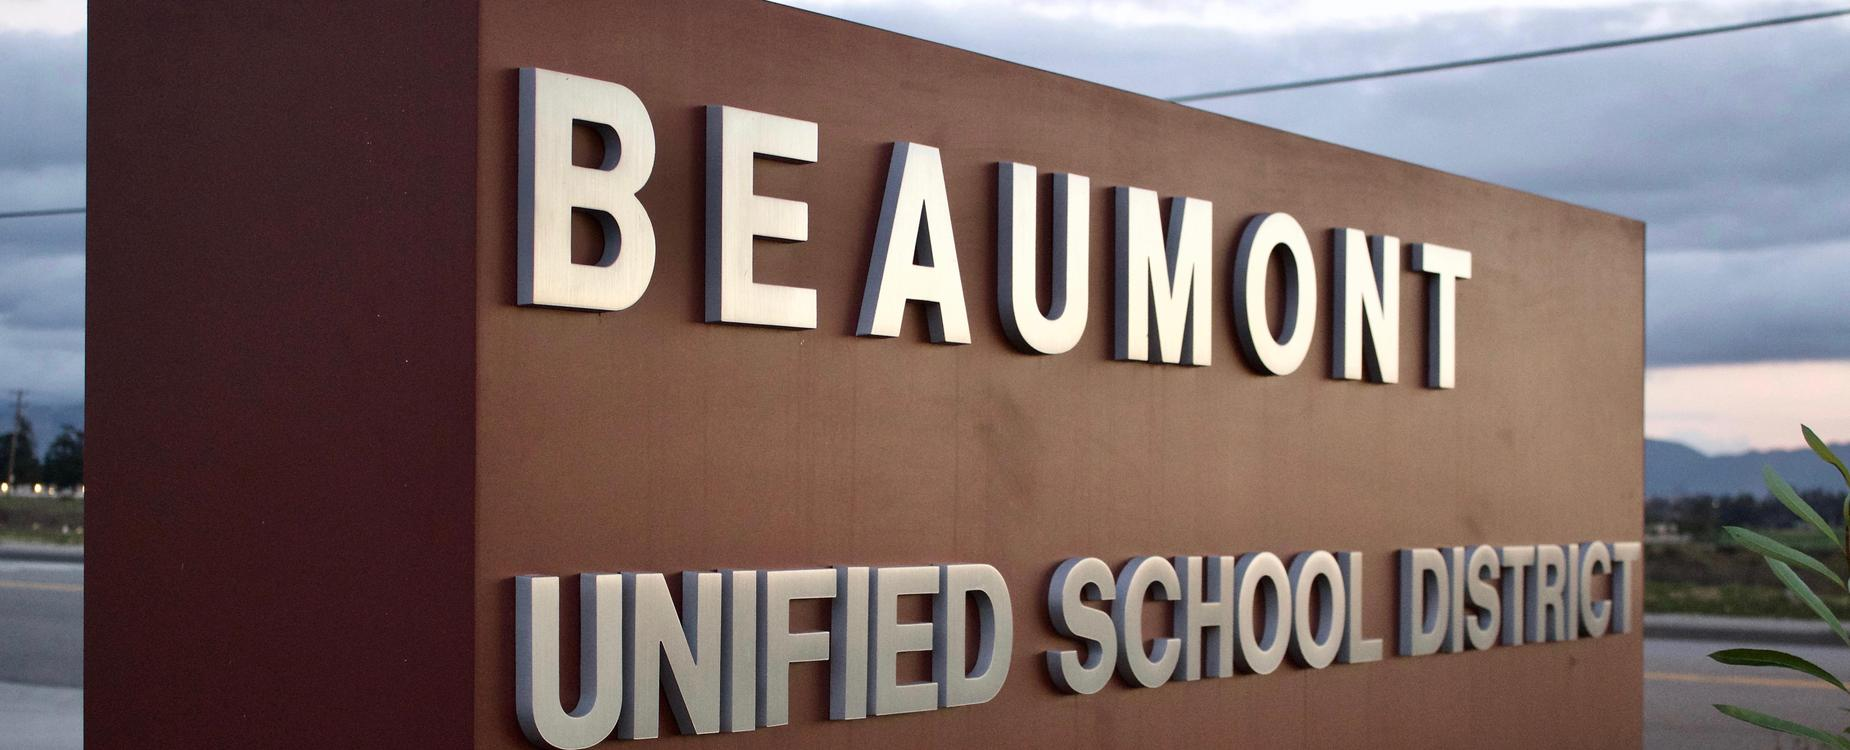 Beaumont Unified School District Sign